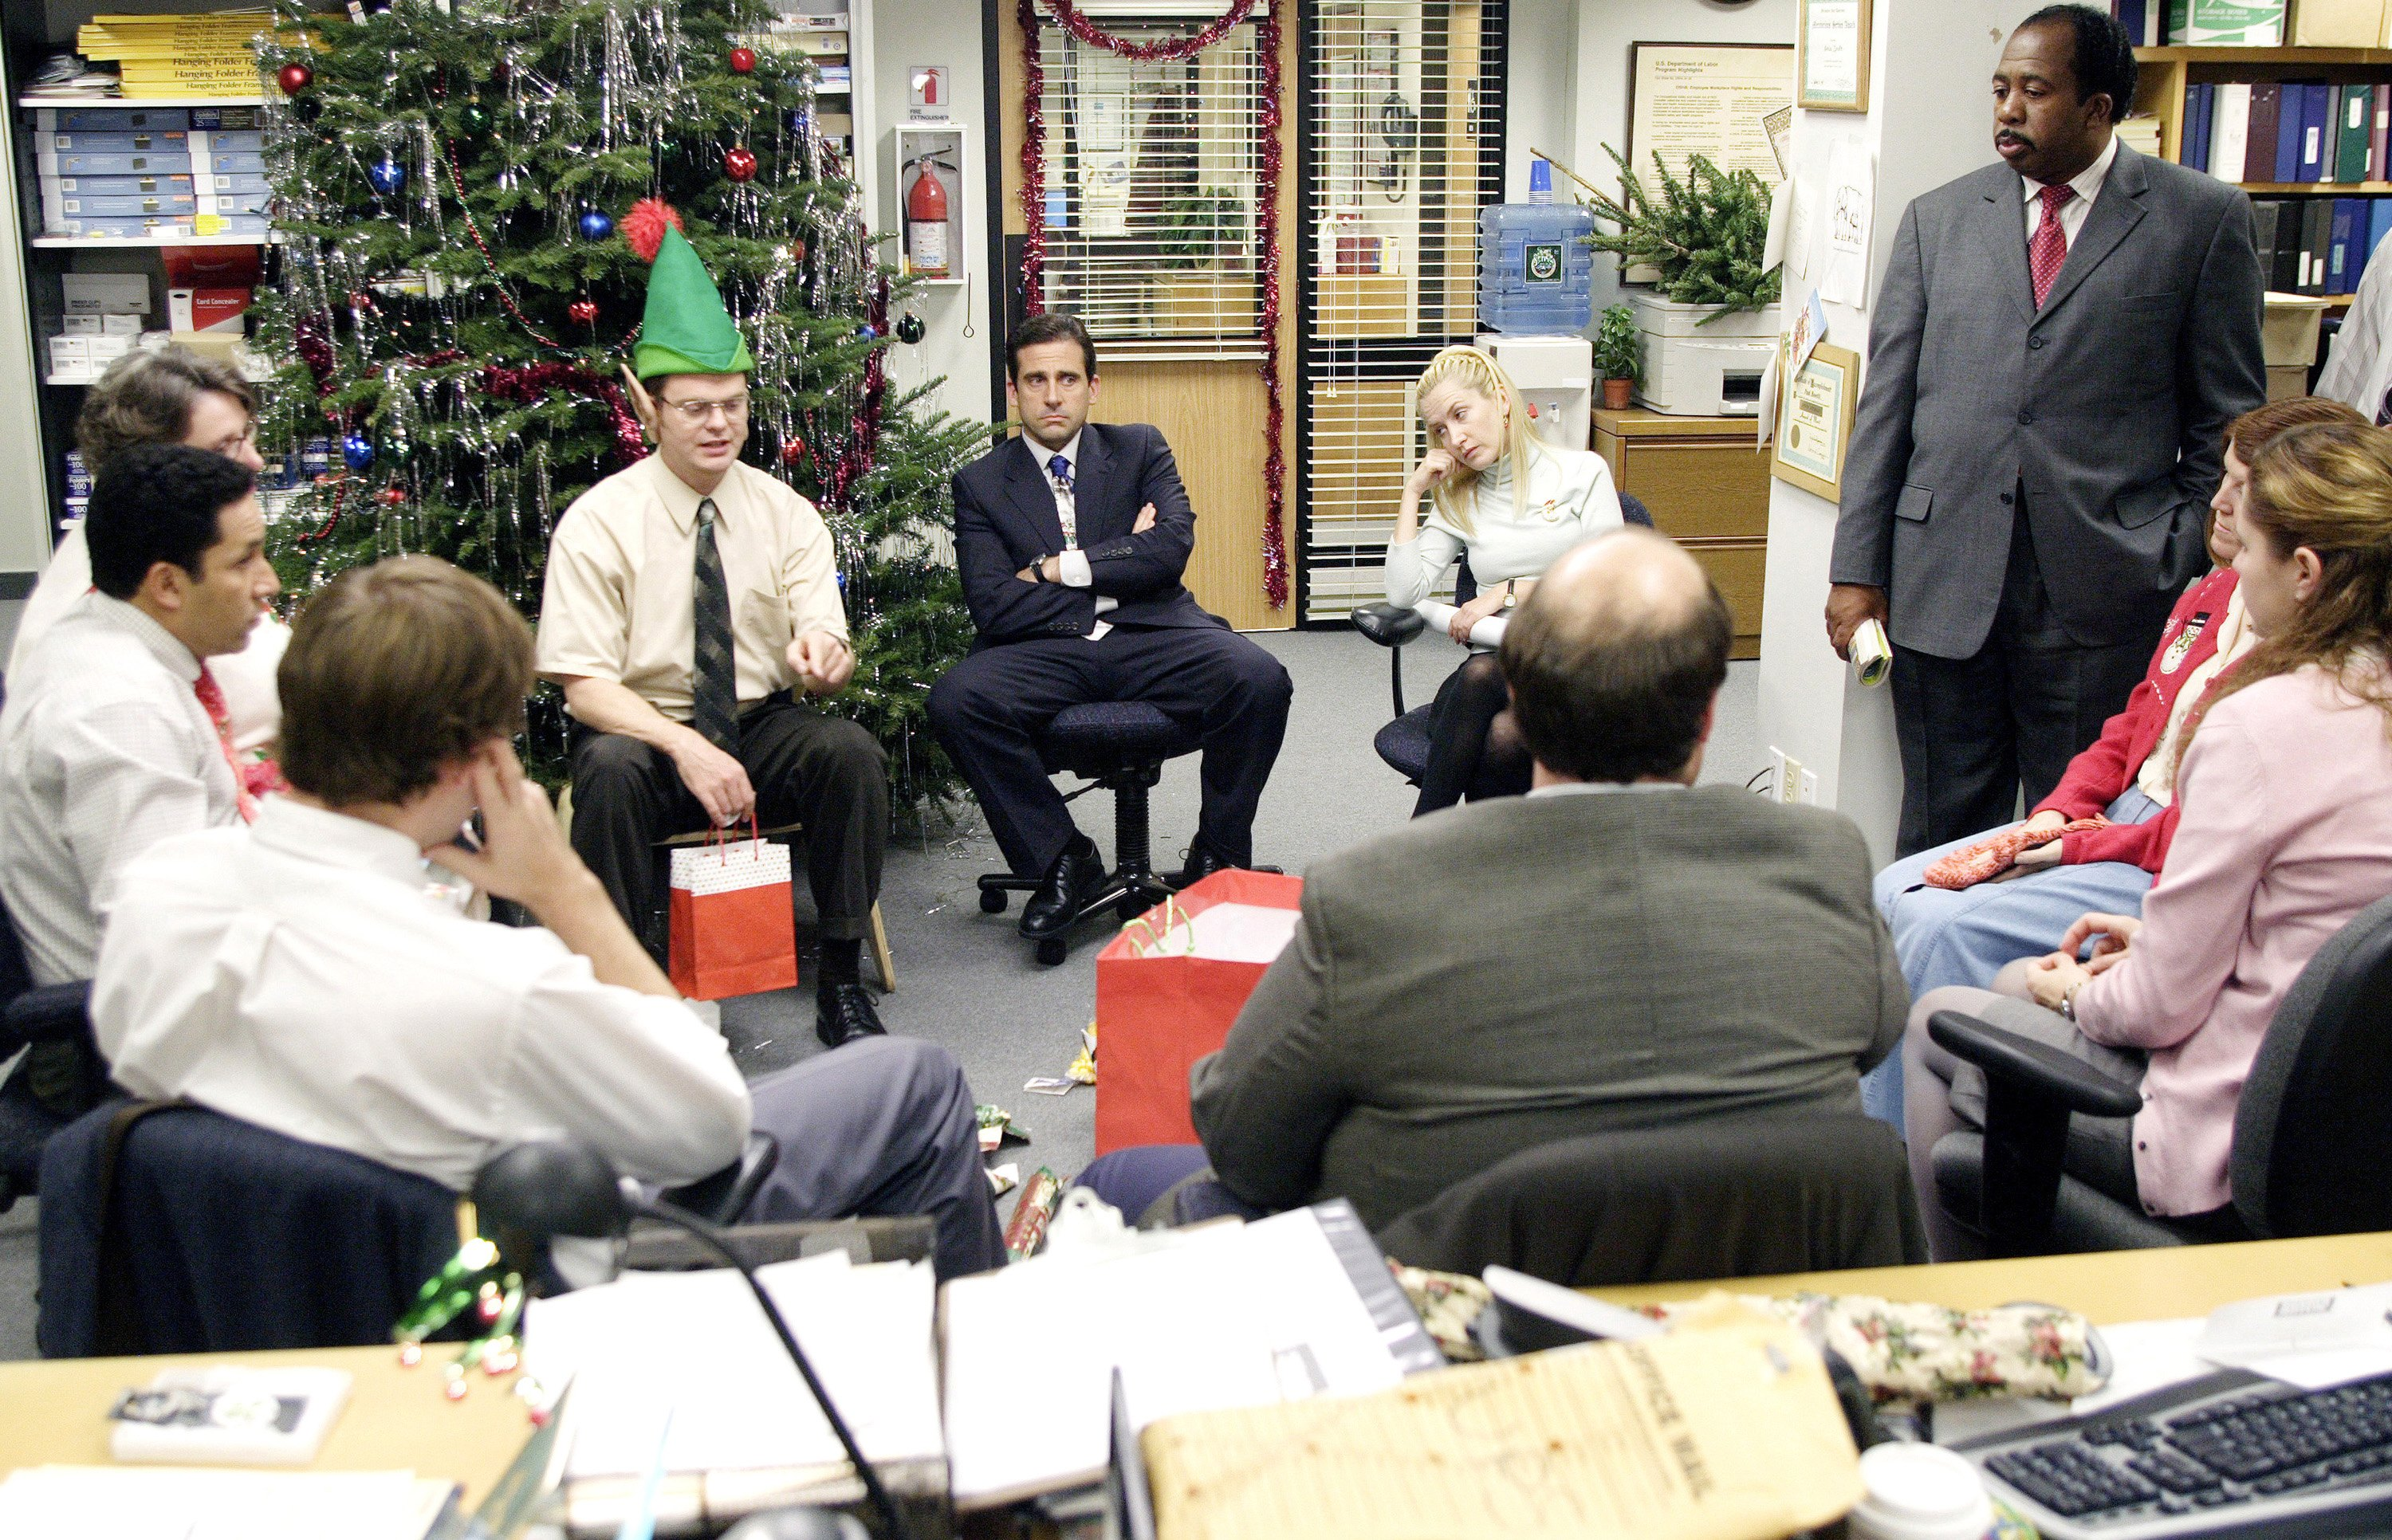 e351d7acfb The Best The Office Christmas Episodes Ranked | Apartment Therapy